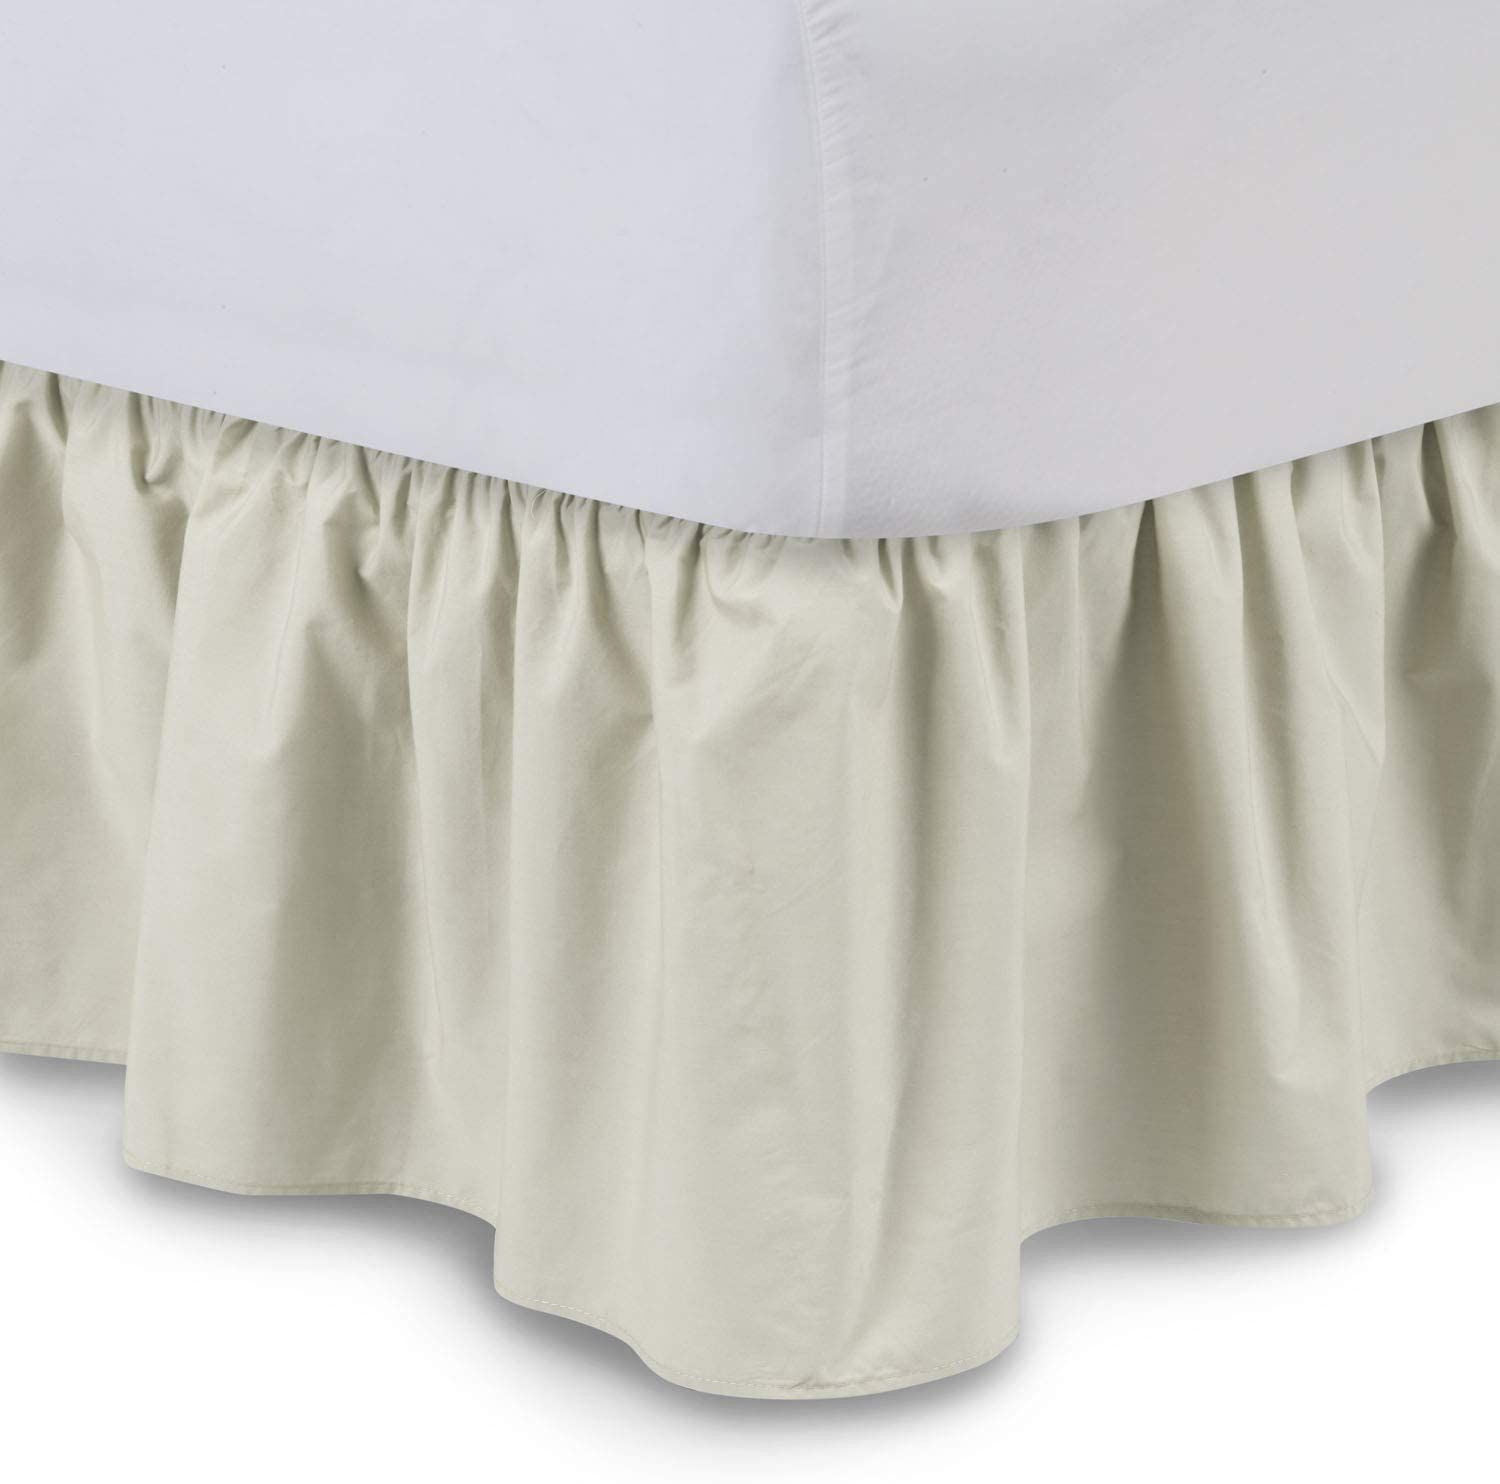 Wrap Around Bed Skirt Best Collection Of Wrap Around Bed Skirts Bedskirt Ruffle Bed Skirts Dust Ruffle